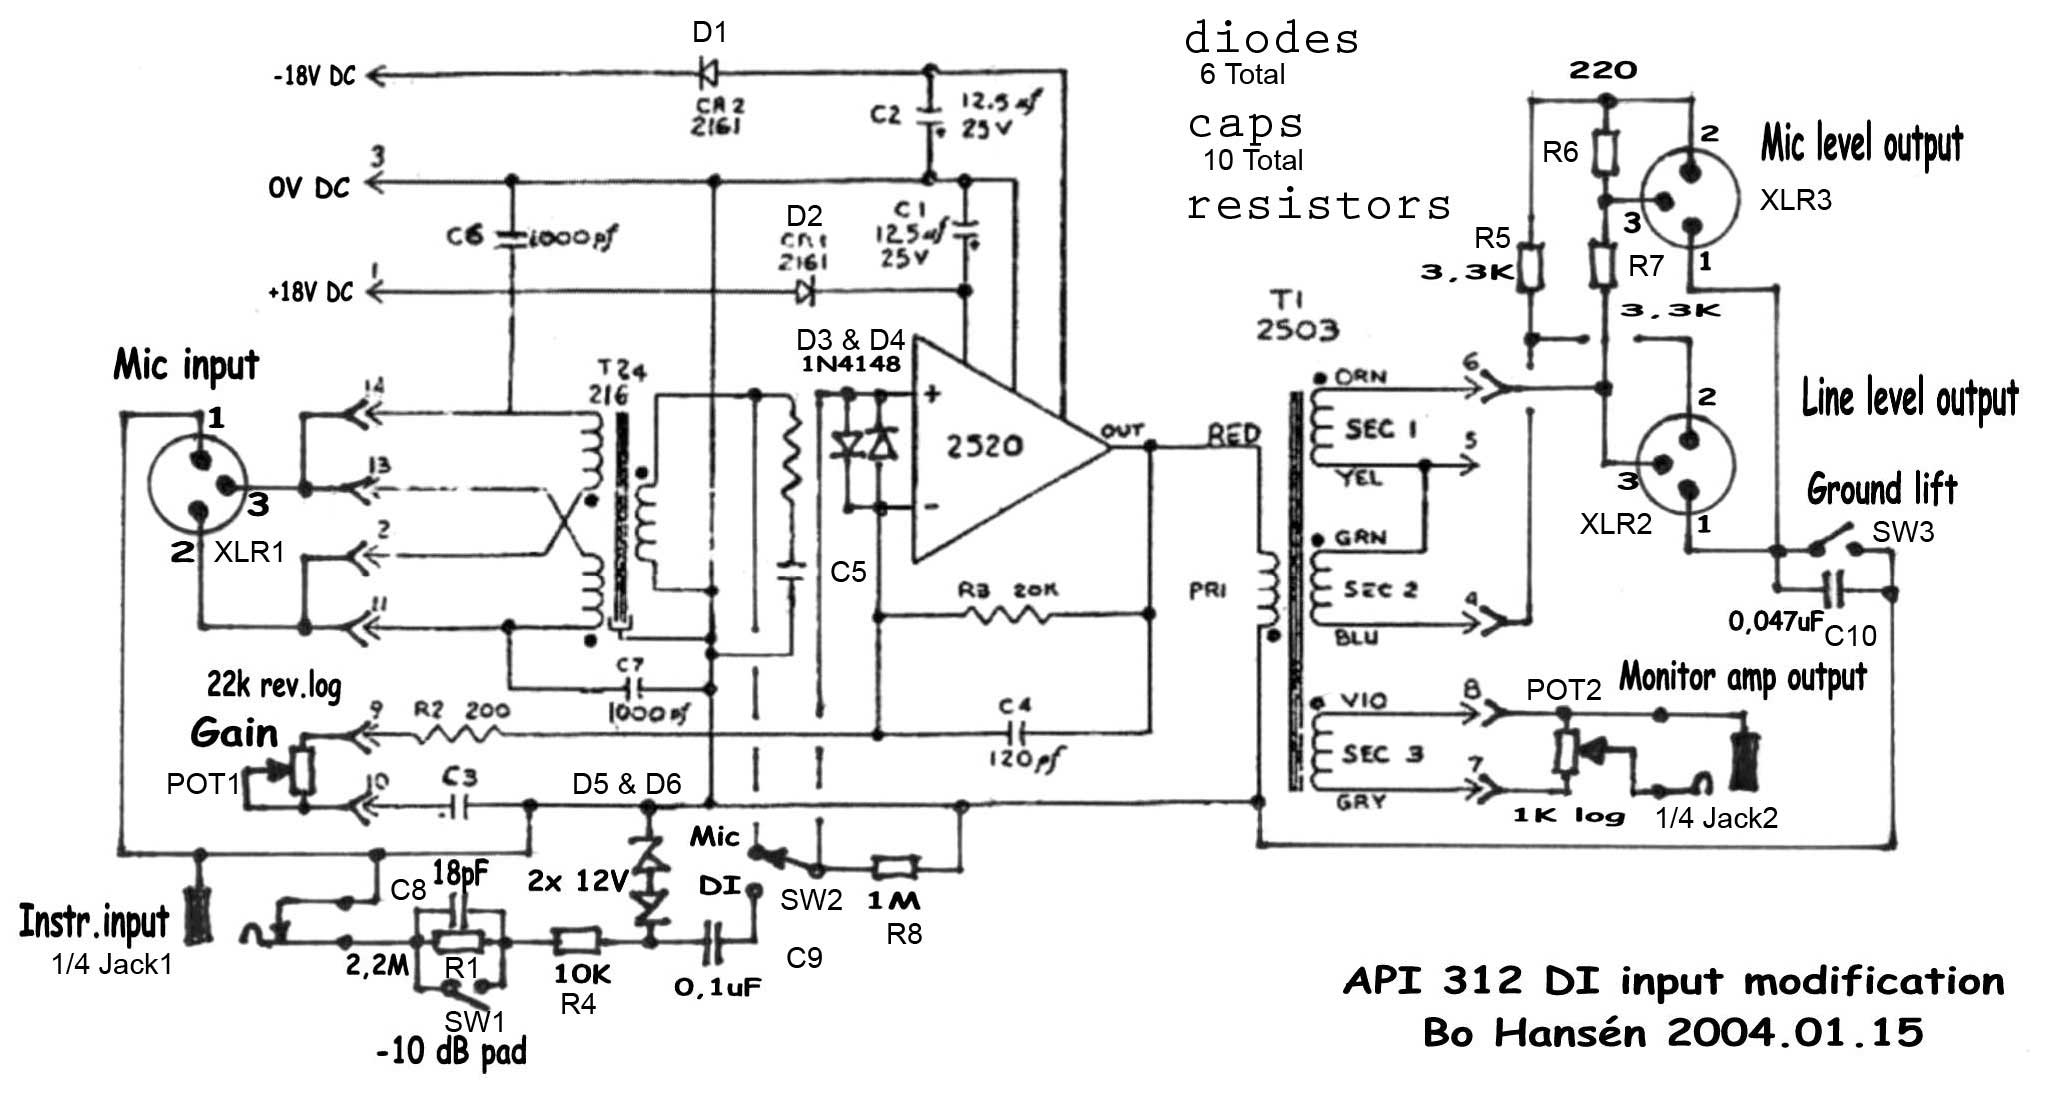 someone please take a look at this board/schematic